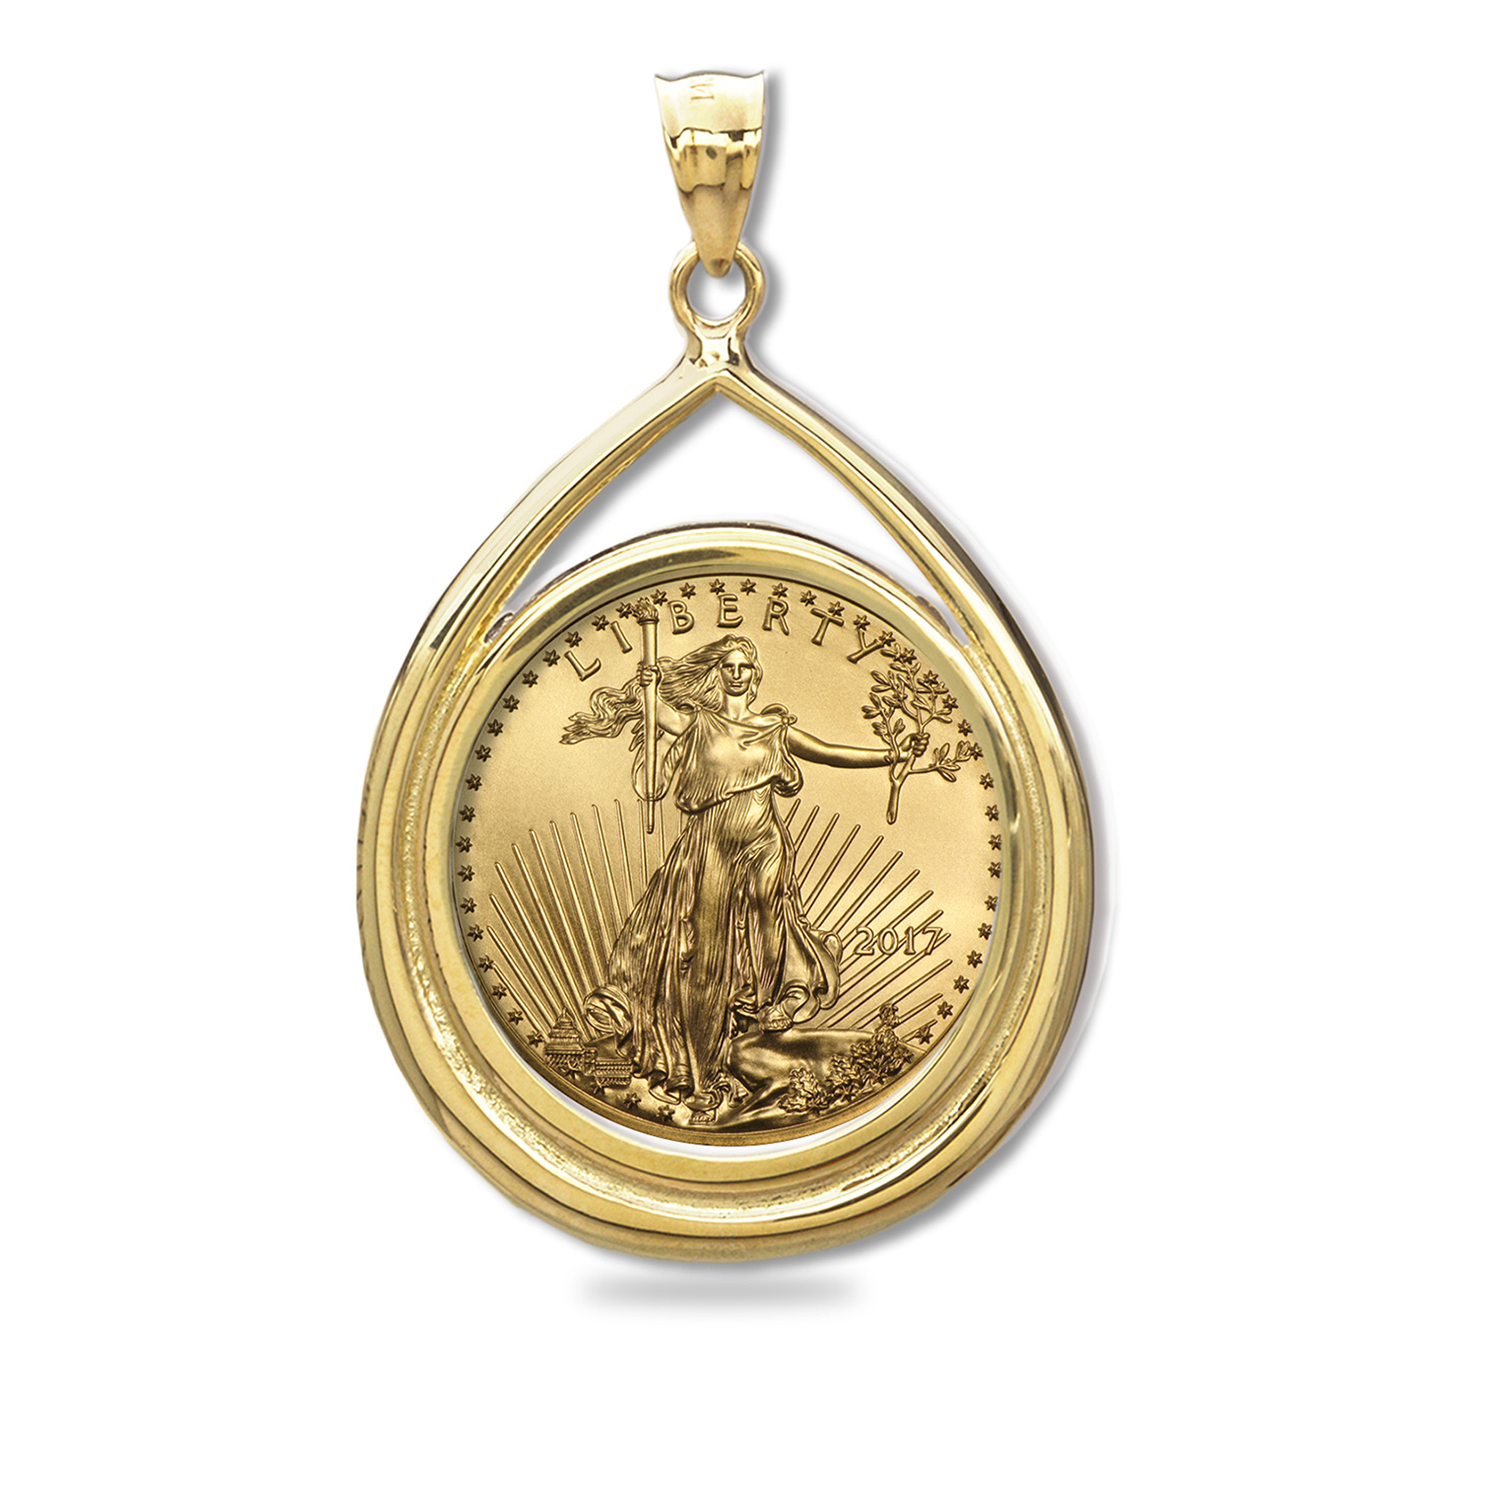 2017 1/4 oz Gold Eagle Teardrop Pendant (Prong Bezel)